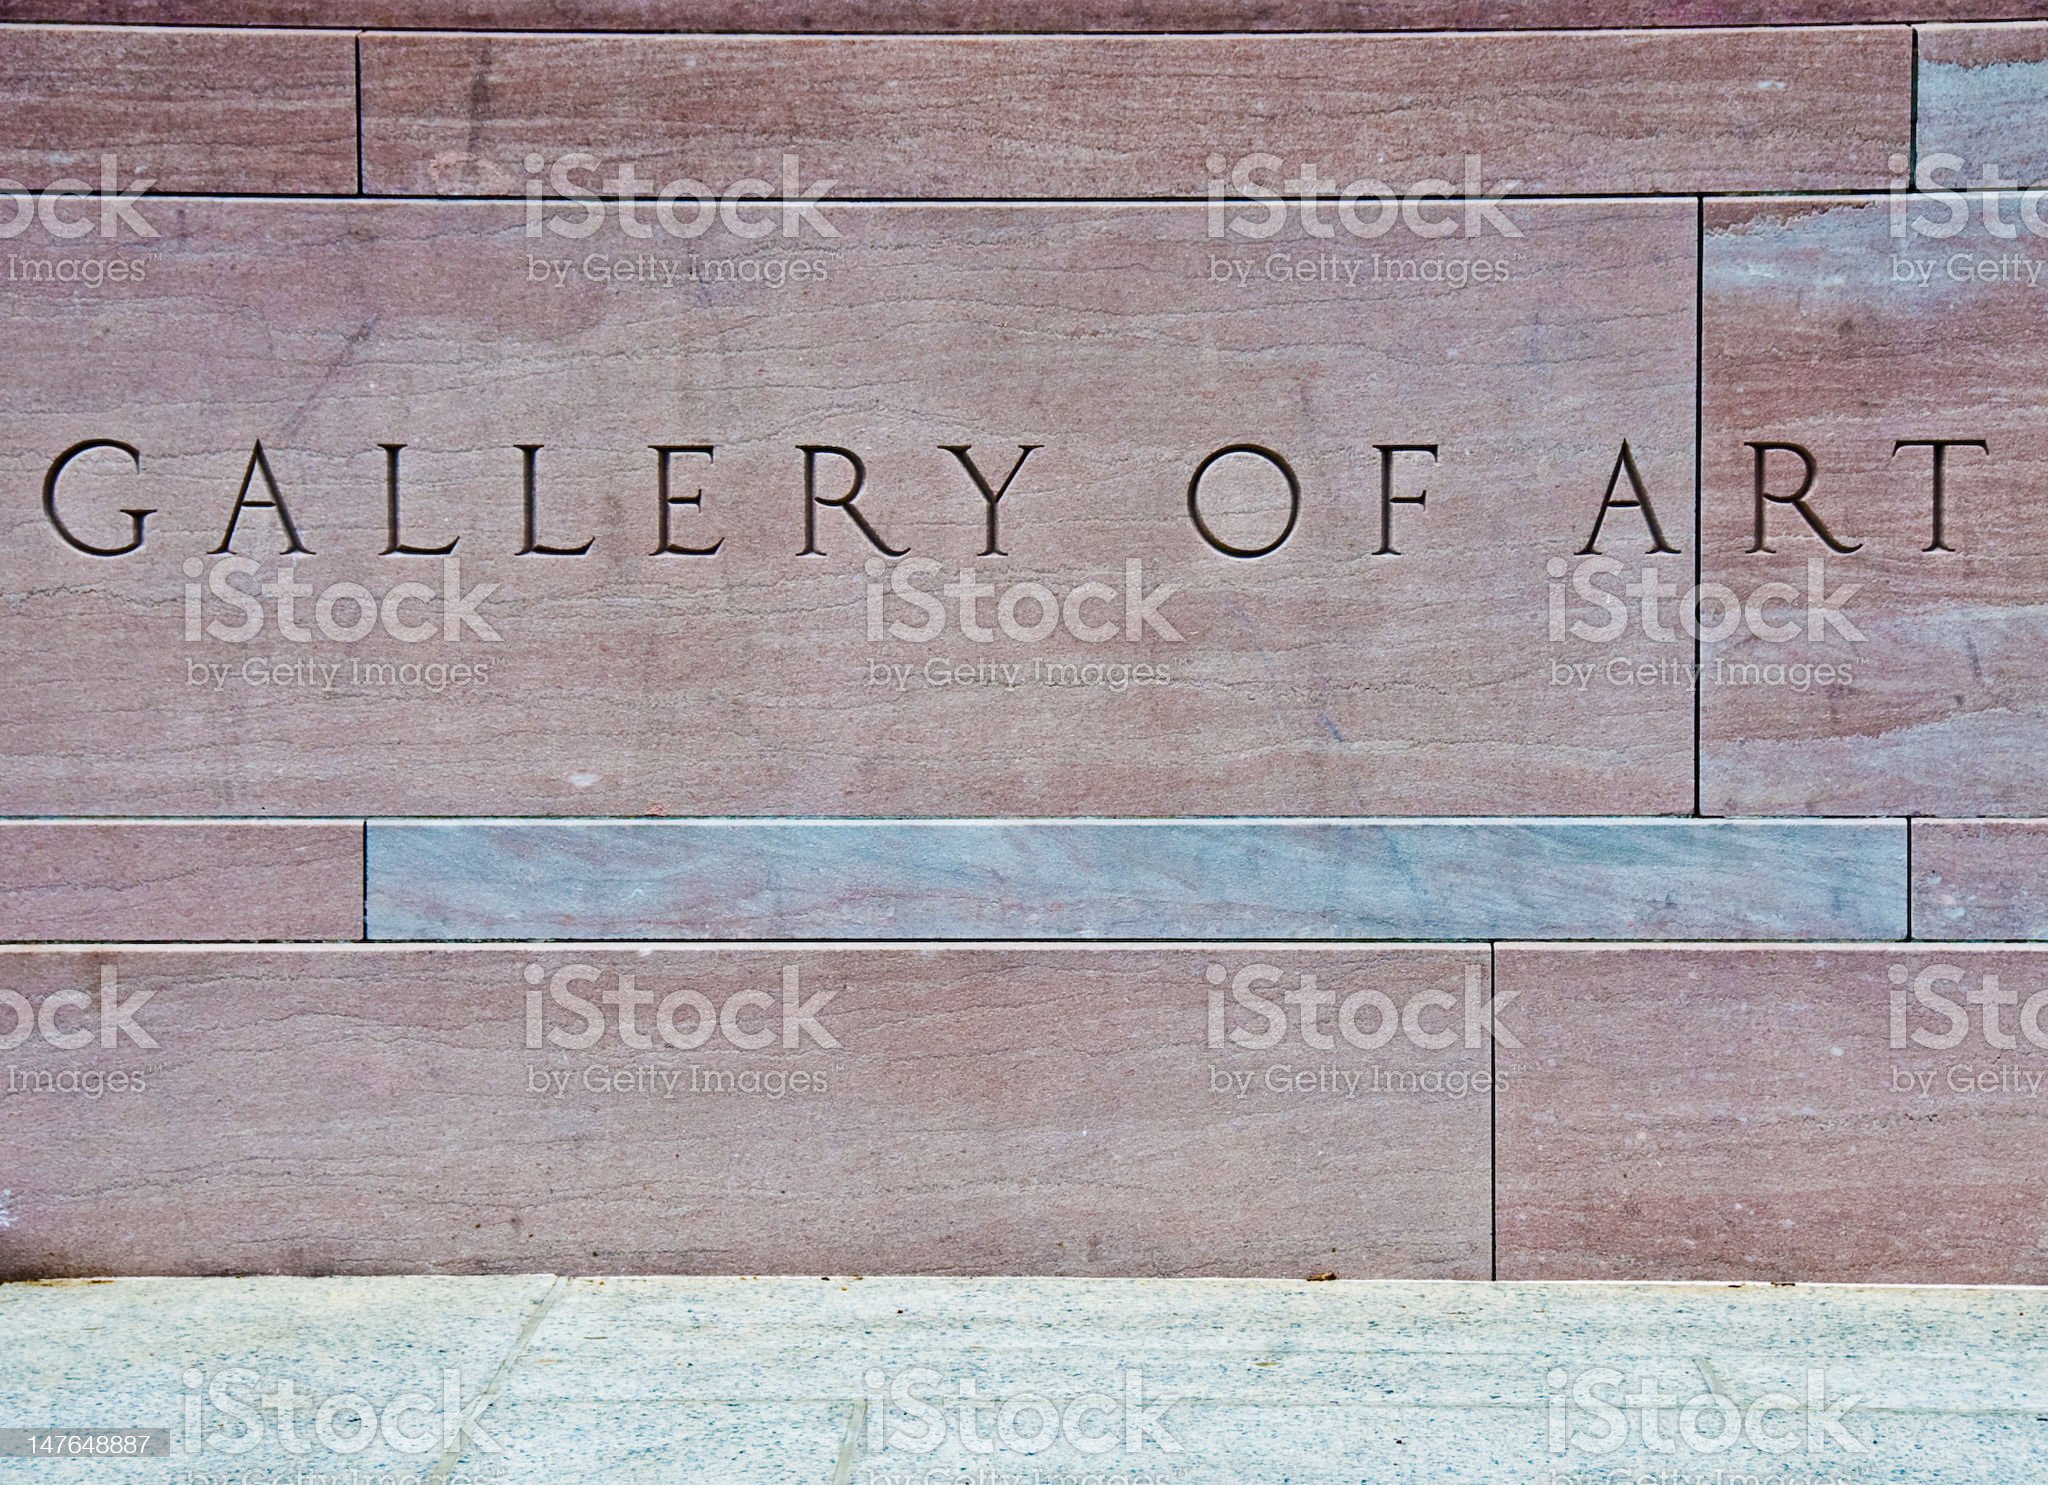 Gallery of Art royalty-free stock photo